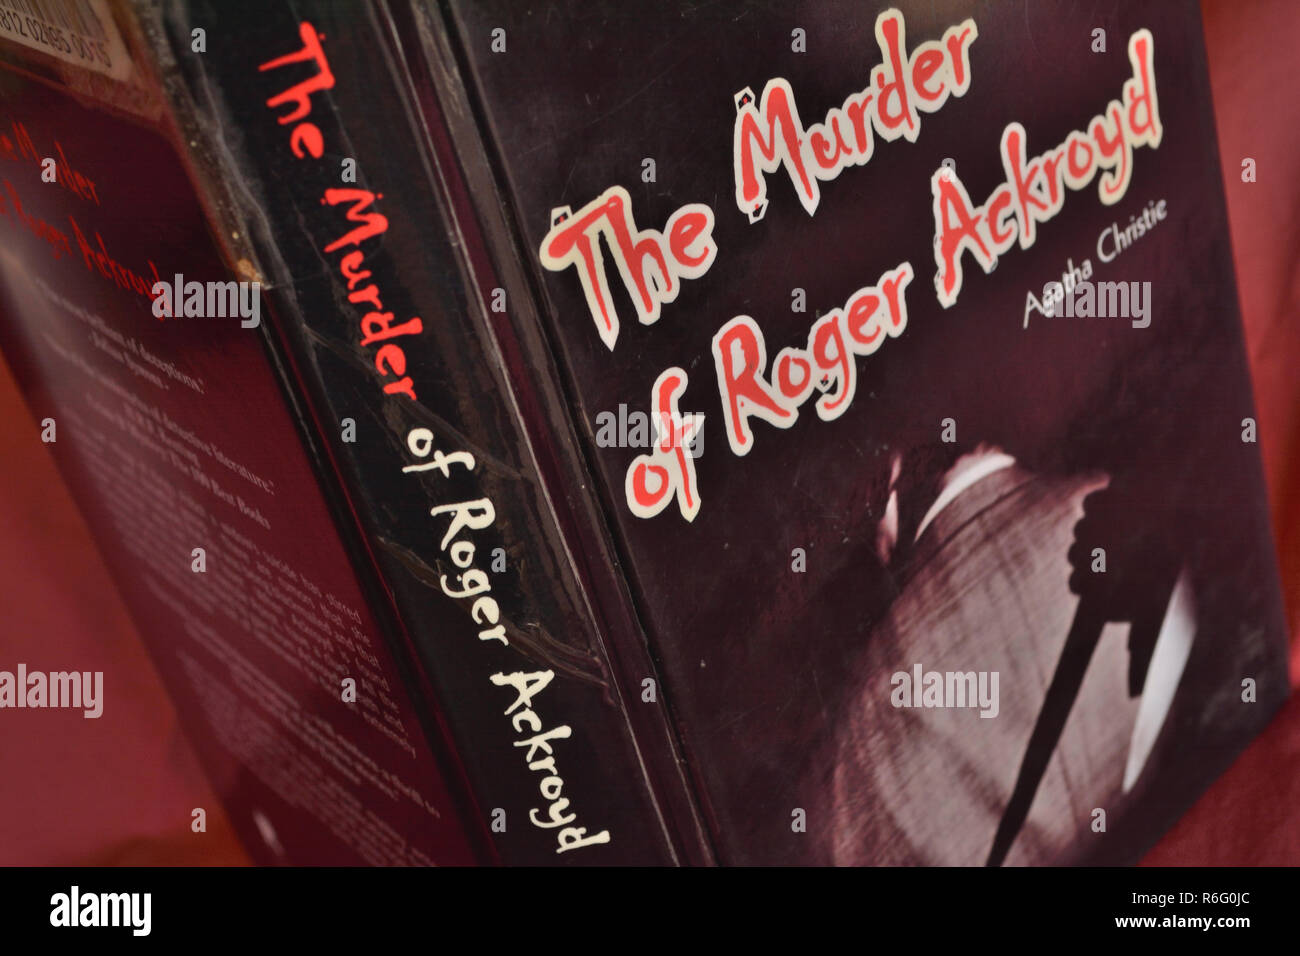 Agatha Christie's murder mystery novel 'The Murder of Rodger Ackroyd' had many covers, including this one from 2003. - Stock Image